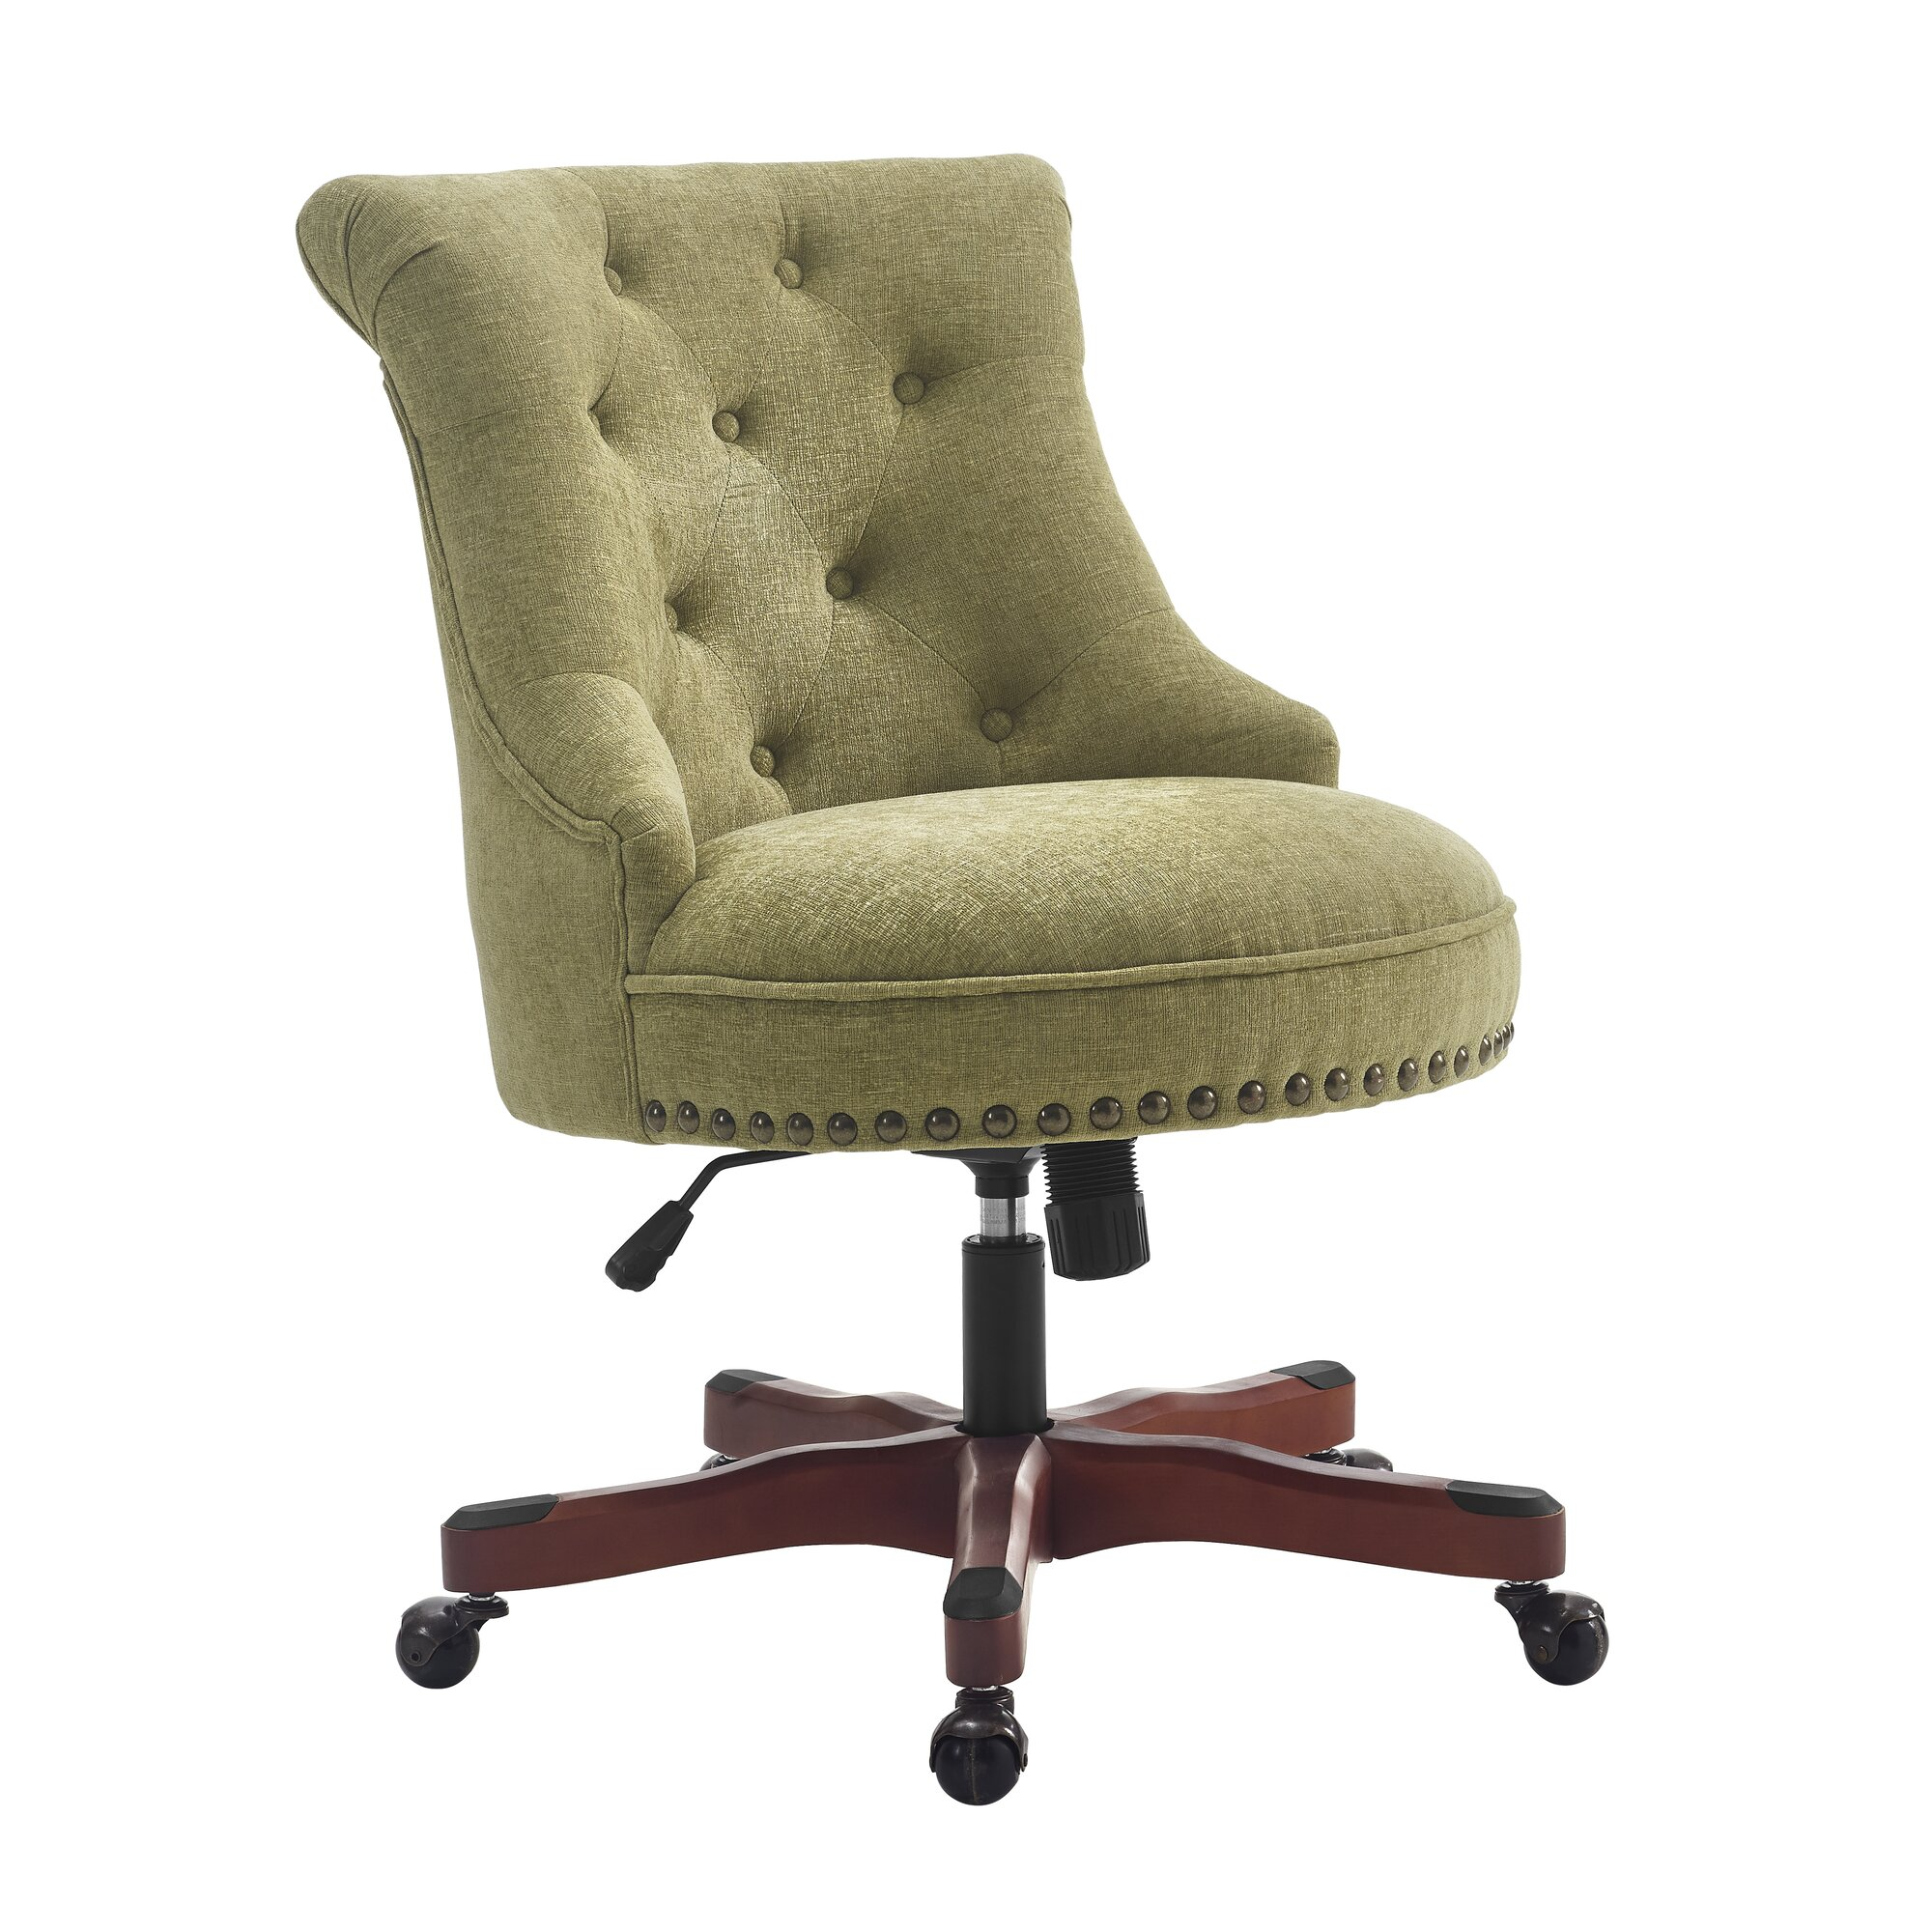 Office chair for sale jhb - Office Chair For Sale Jhb 31